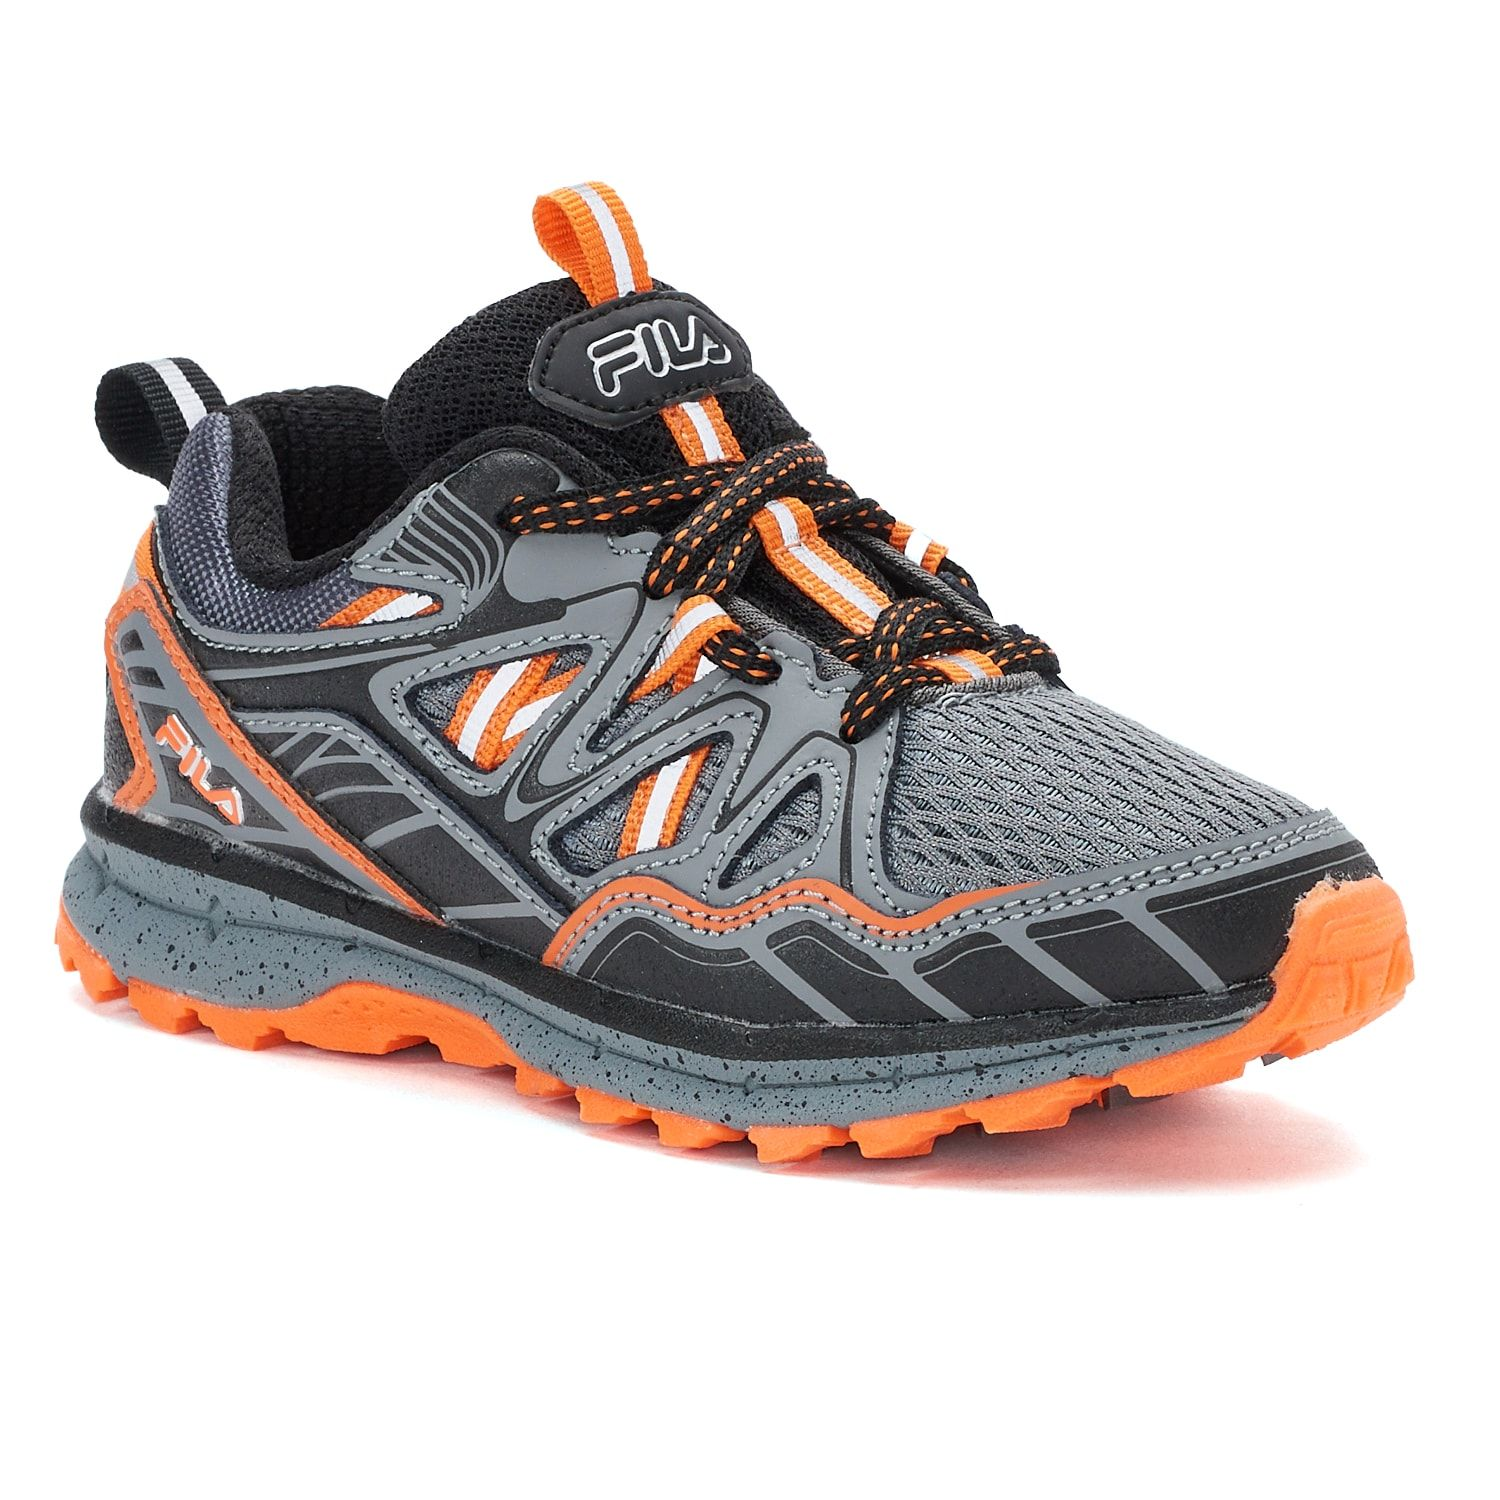 FILA庐 TKO TR 5.0 Boys Trail Running Shoes #TR, #FILA, #TKO, #Running | Trail  running shoes, Running shoes, Shoe features